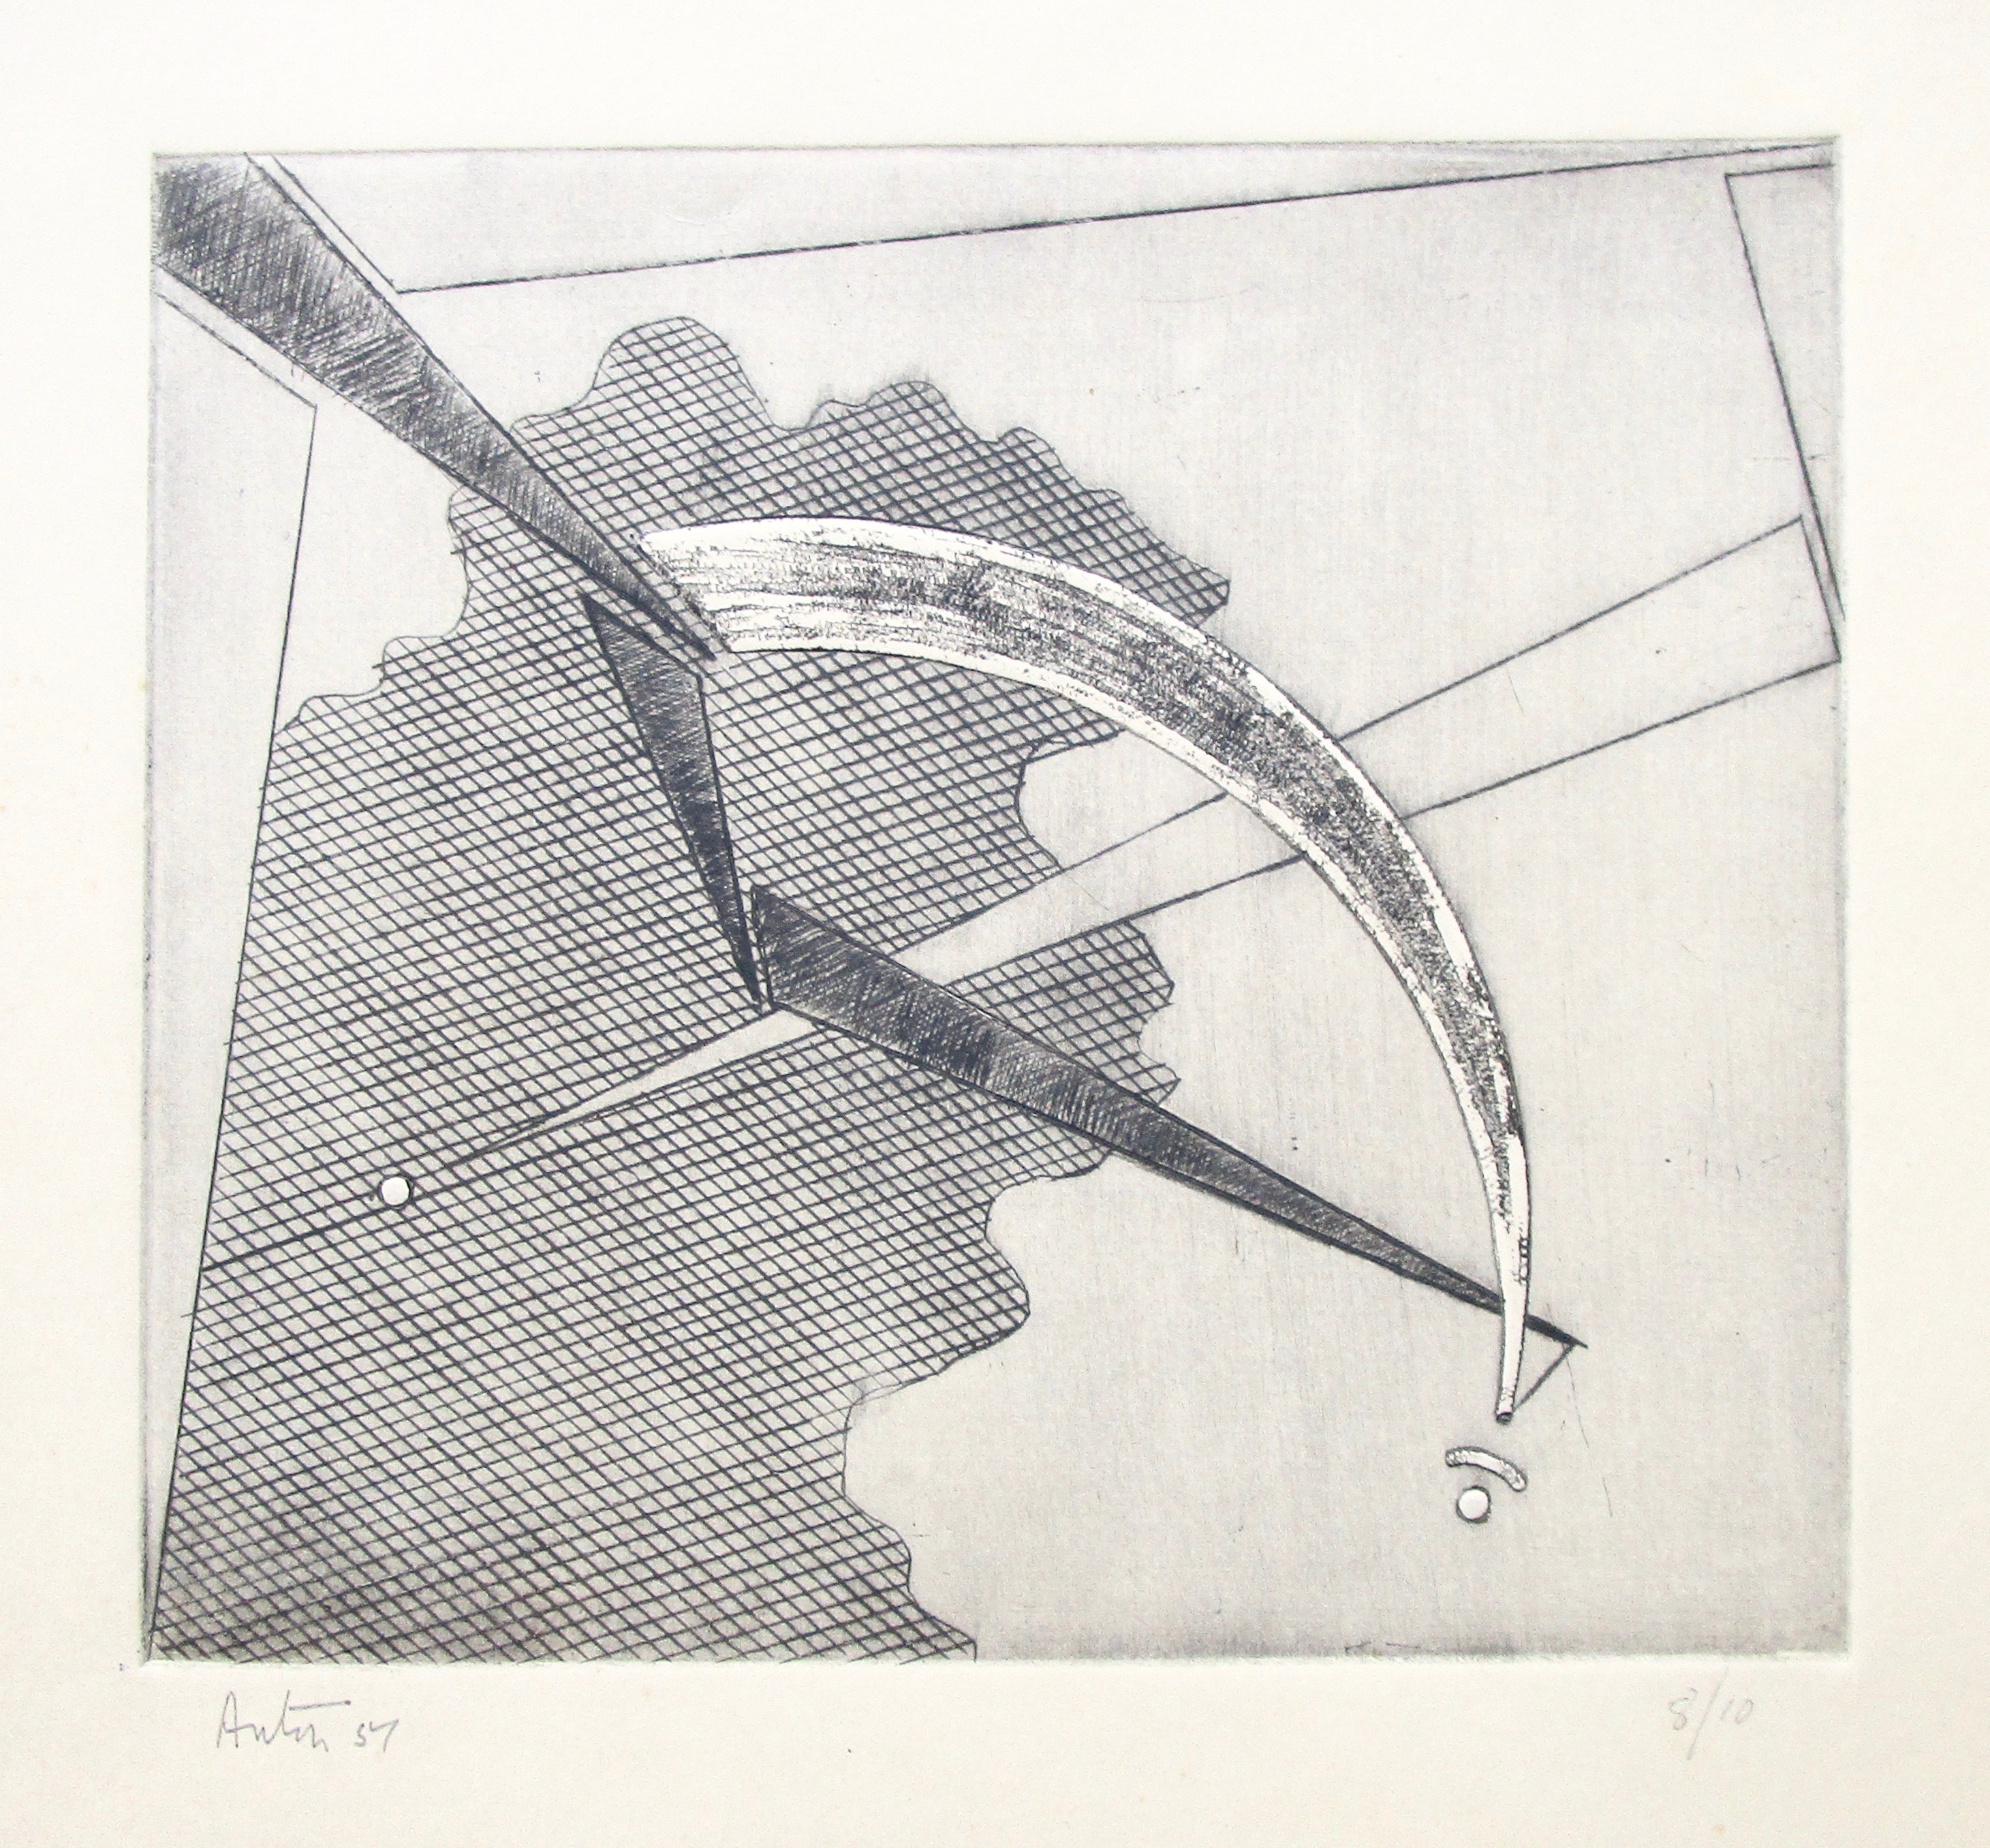 VICTOR ANTON [1909-1980]. Untitled (Harmony and Tension V), 1951. Engraving on cream wove paper.